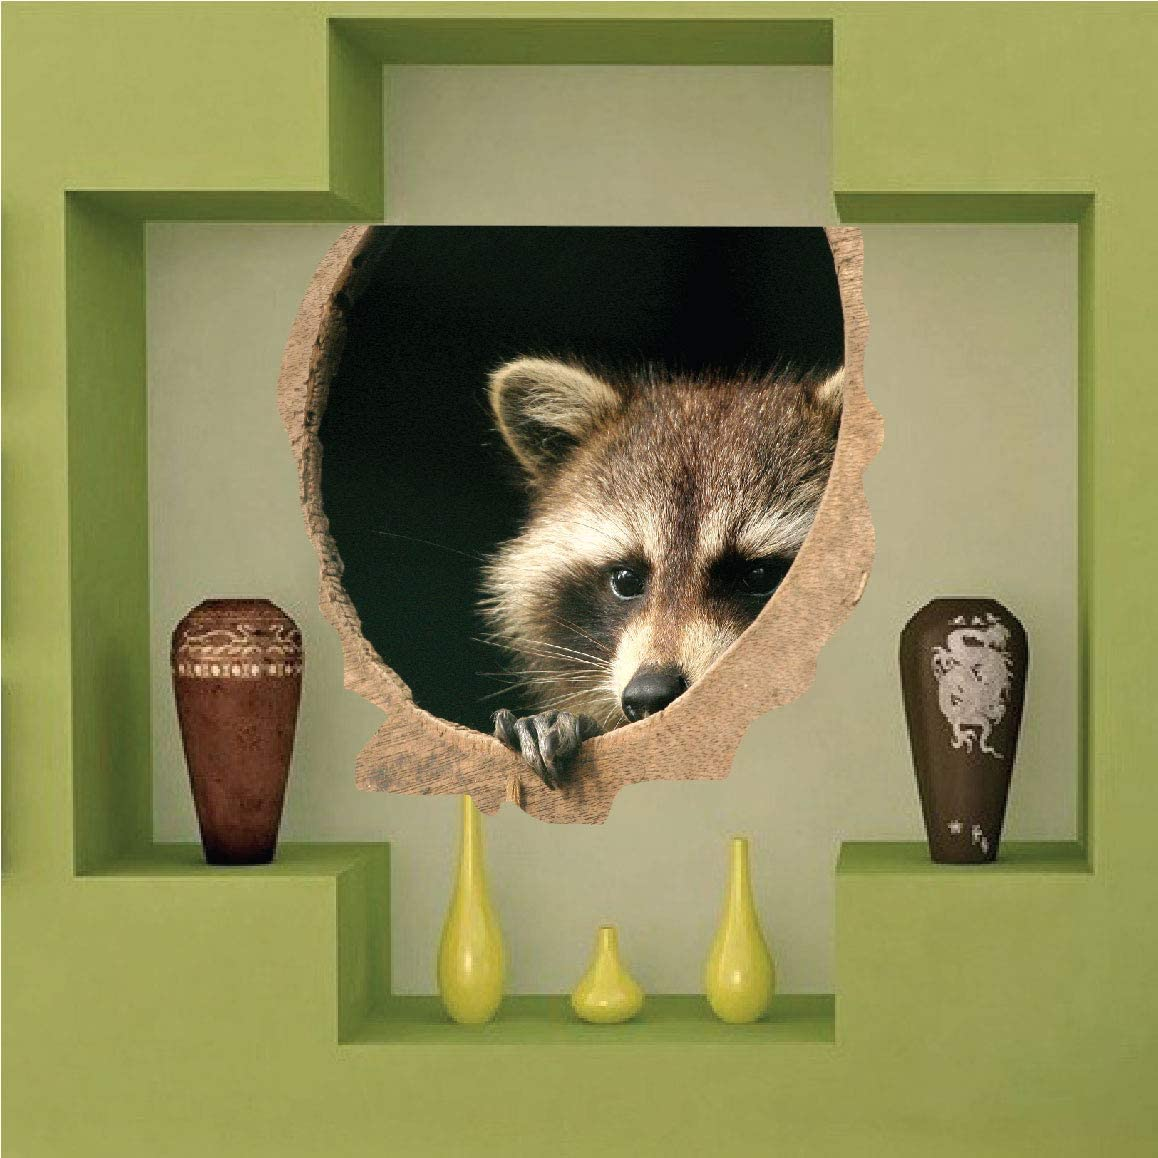 Wall Decals Raccoon Home Decor Wild - Regular store Animal Indianapolis Mall Mural Stick